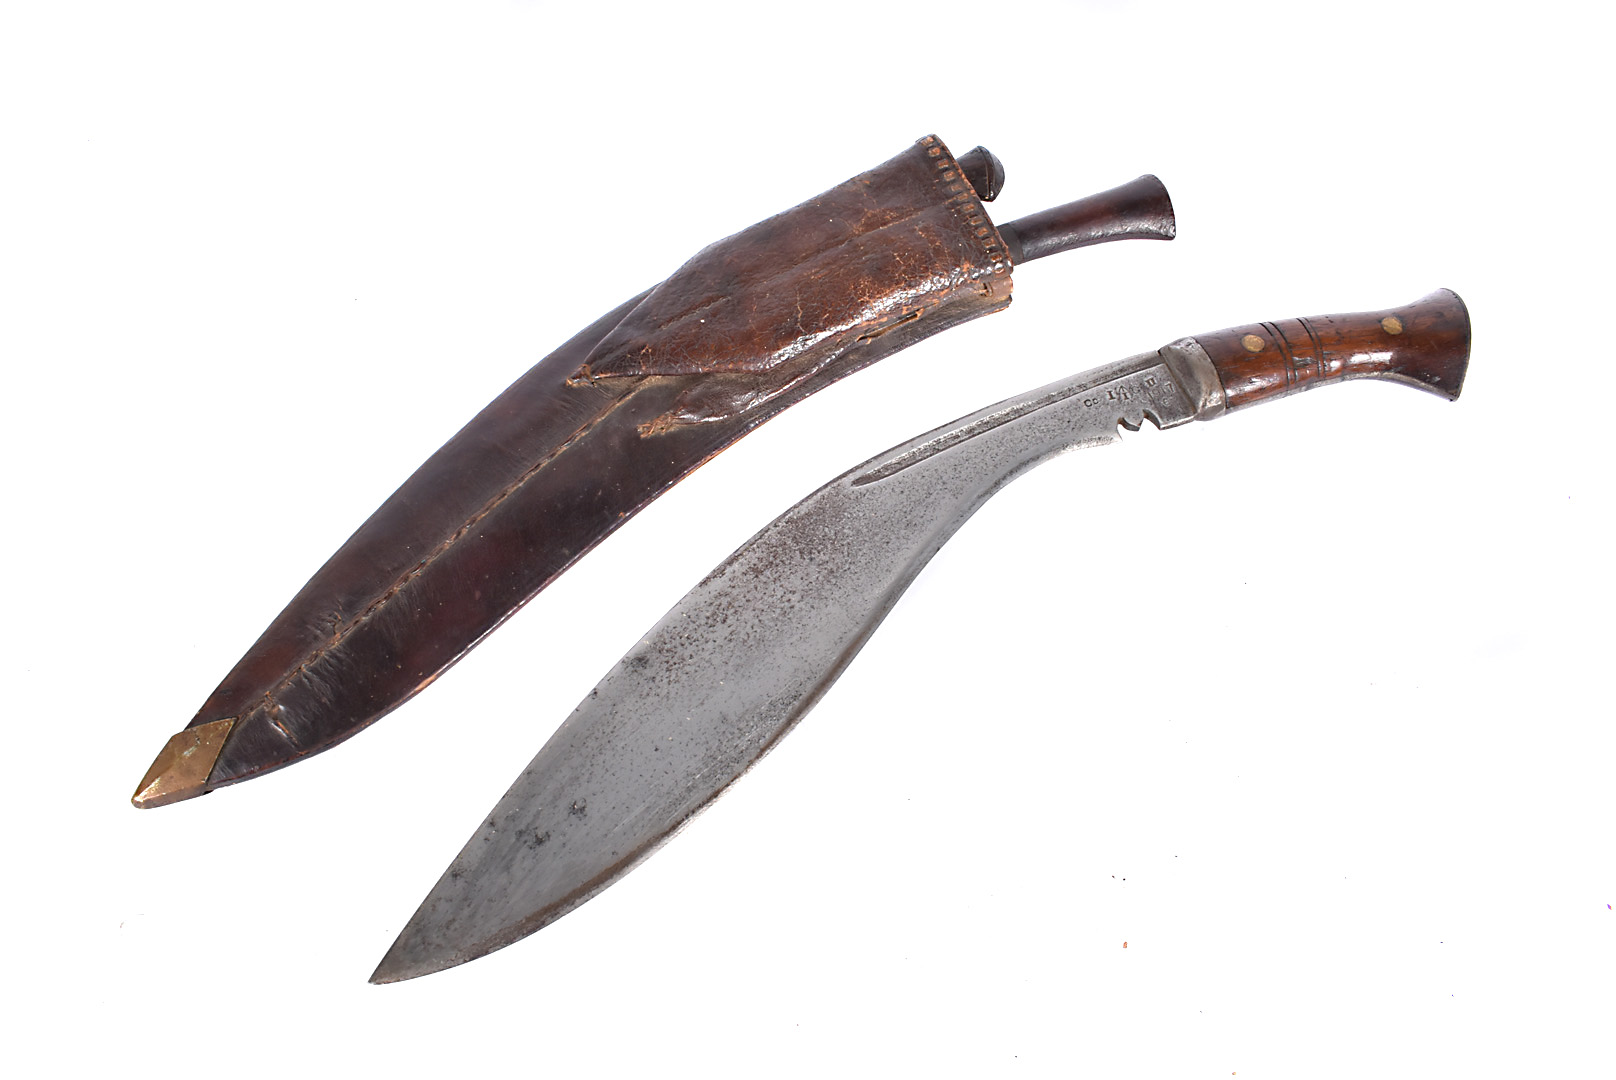 A WWI military issue Kukri, dated 1917, also stamped with broad arrow, issue number 659, complete